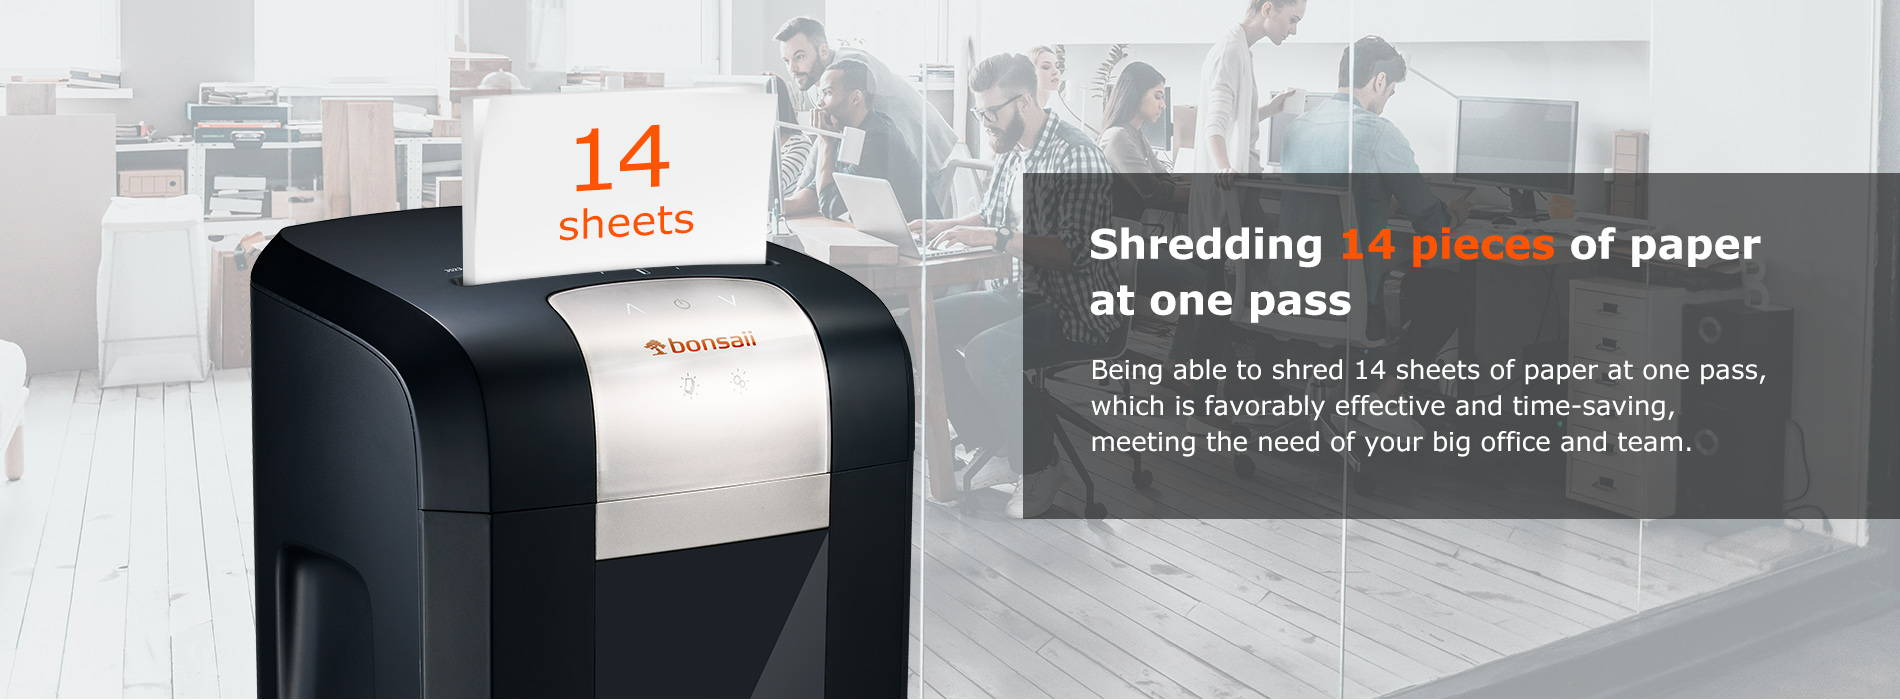 Shredding 14 pieces of paper at one pass Being able to shred 14 sheets of paper at one pass, which is favorably effective and time-saving, meeting the need of your big office and team.